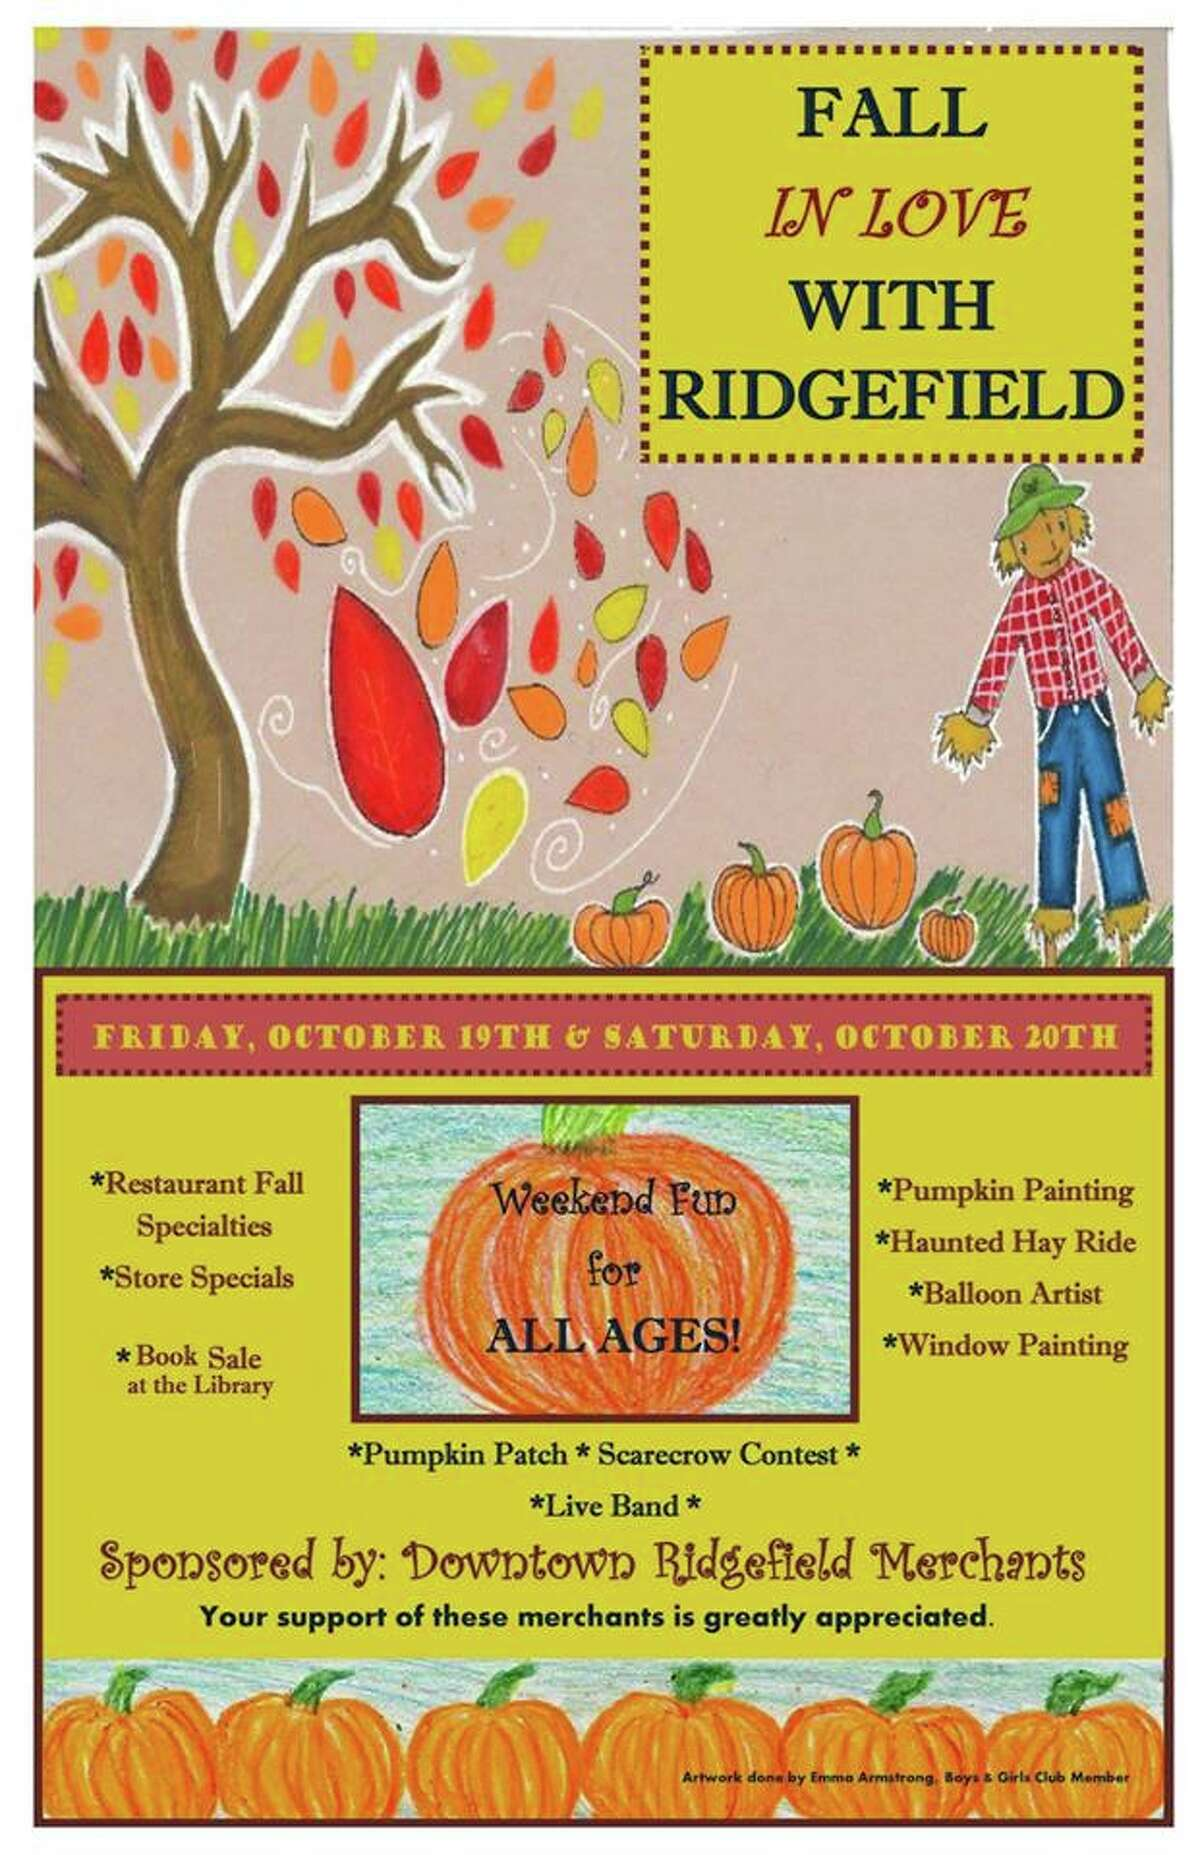 This year's Fall in Love With Ridgefield poster was created by Emma Armstrong who attends the Ridgefield Boys and Girls Club. The poster highlights many of the weekend's offerings including: window painting, haunted hay rides, and restaurant specials.